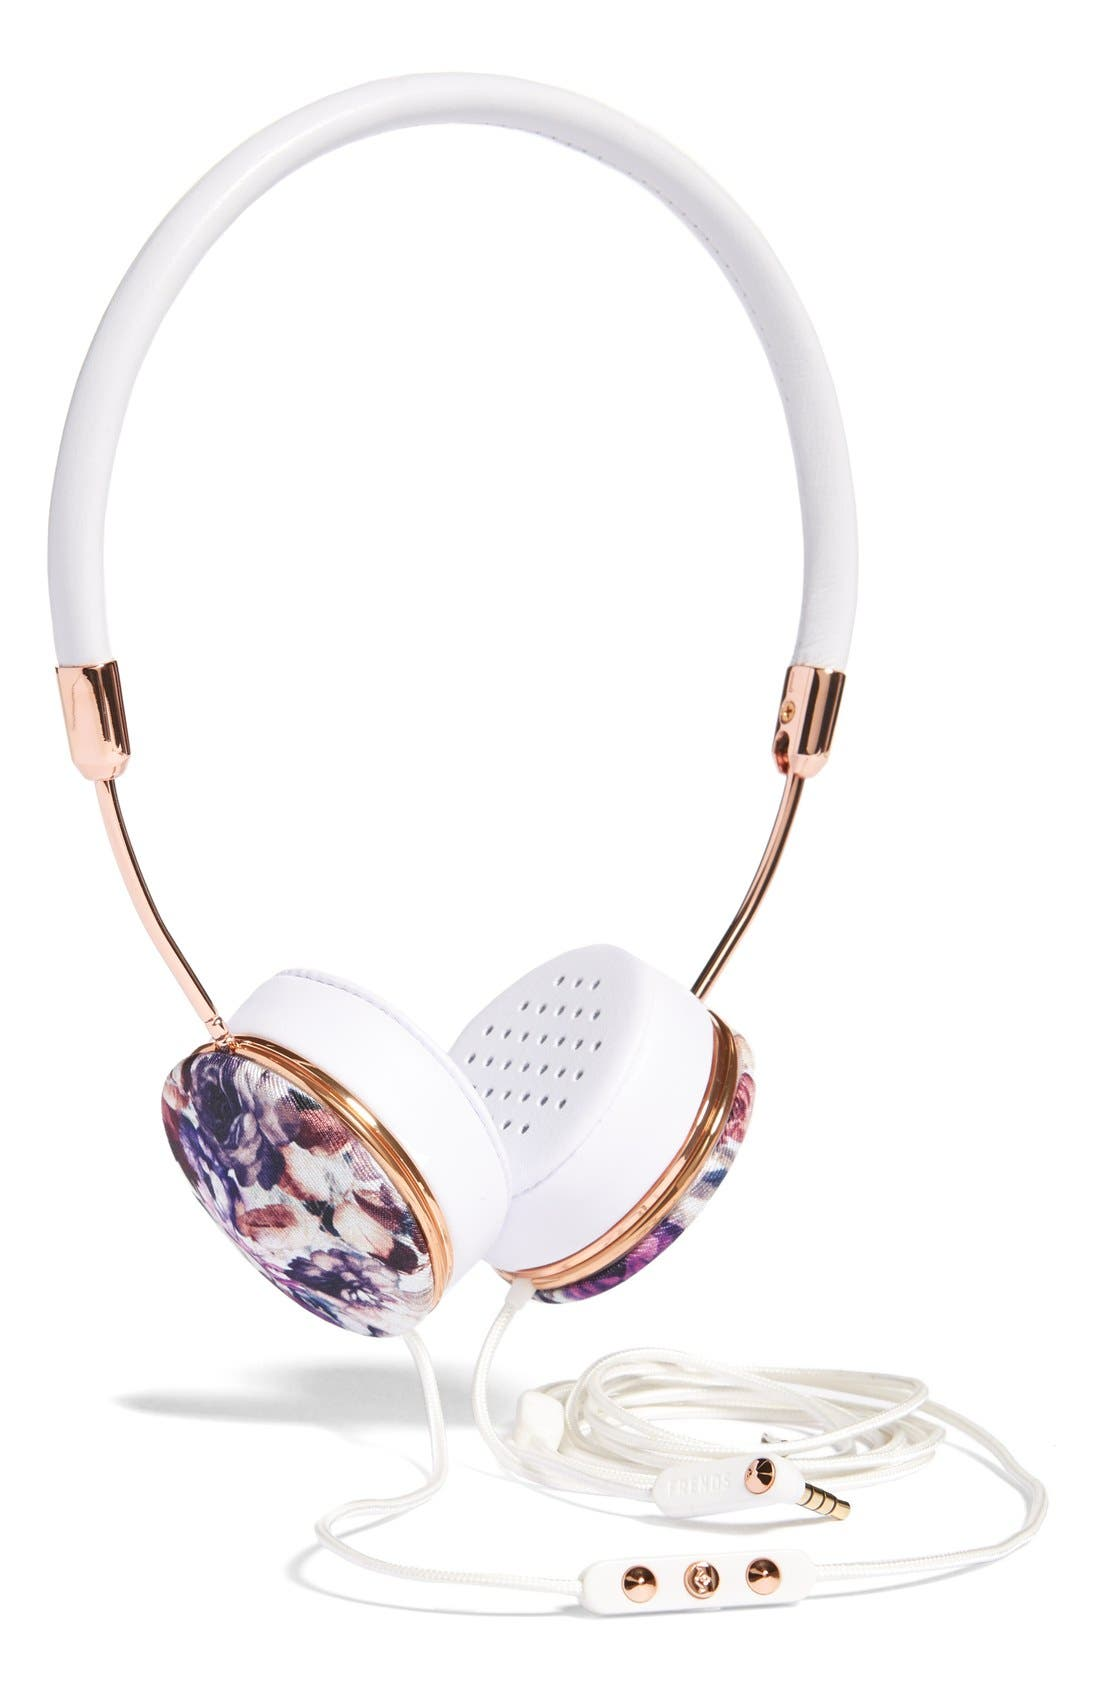 Main Image - Frends x We Are Handsome 'Layla' Headphones (Online Only)